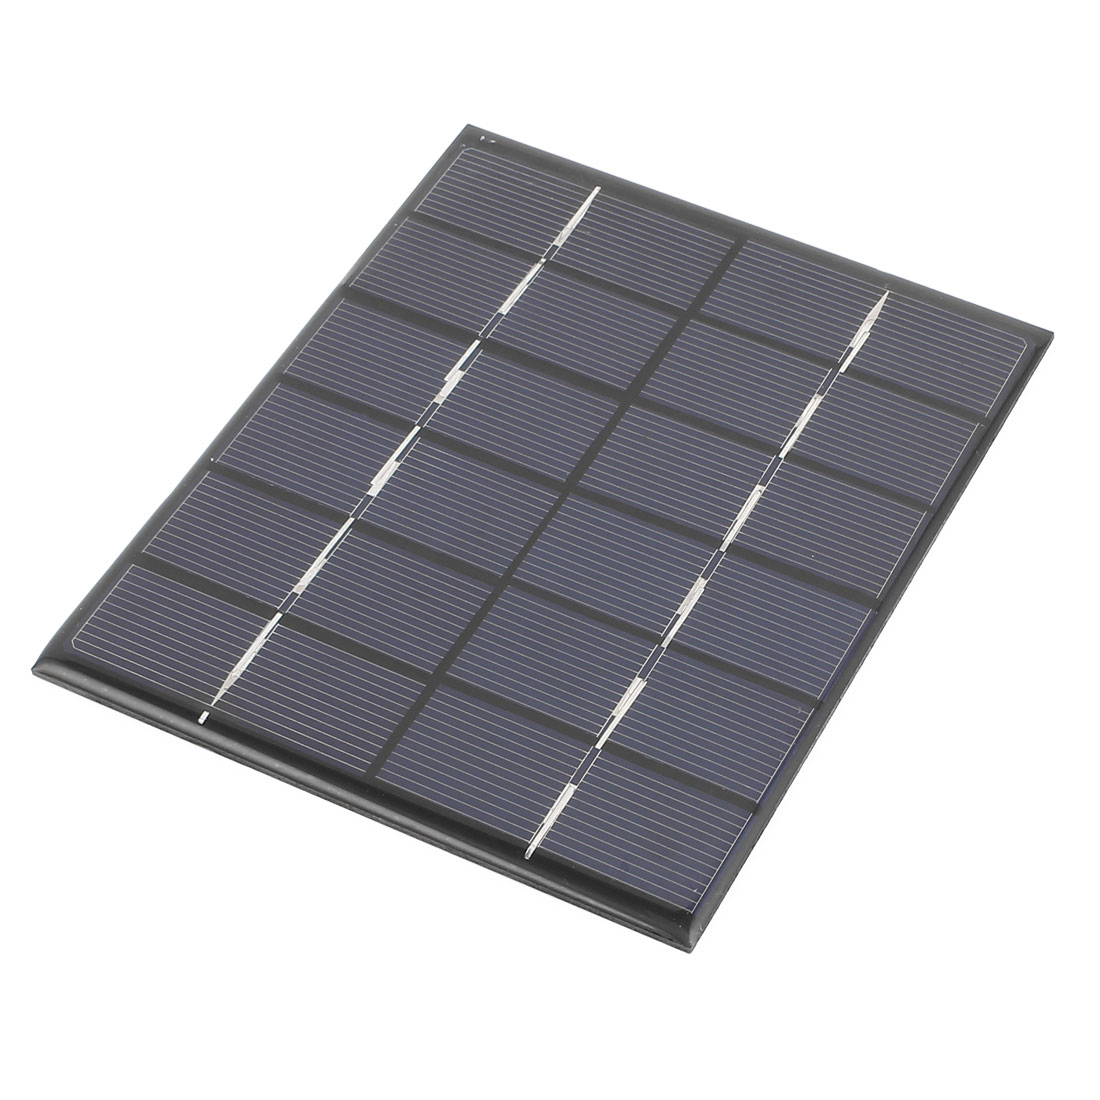 6V 2W DIY Polycrystallinesilicon Solar Panel Power Cell Battery Charger 136mm x 110mm